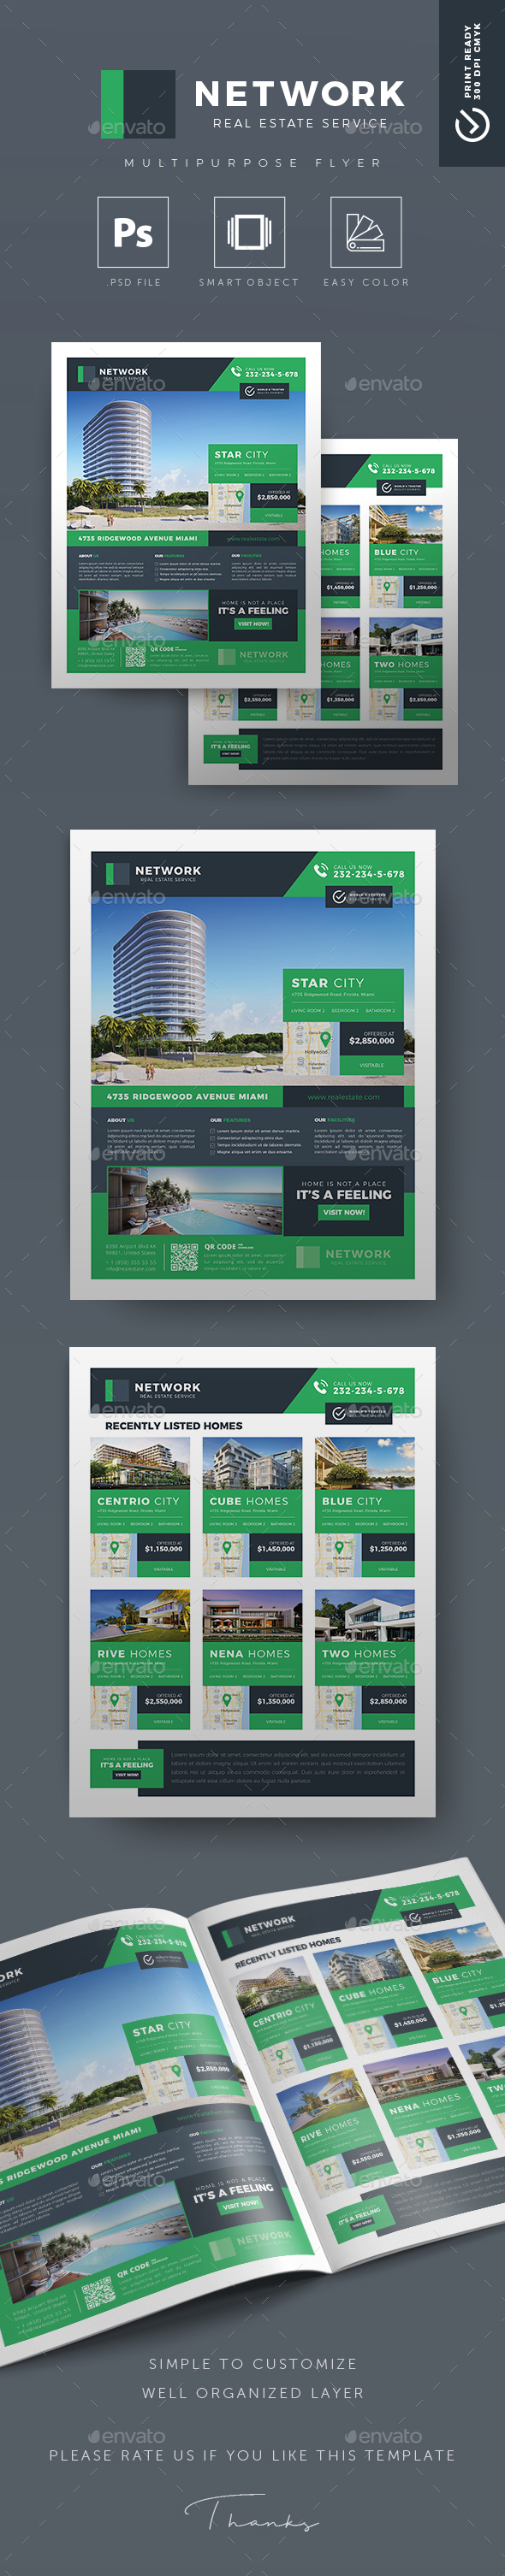 Network v.02 - Creative Real Estate Flyer - Commerce Flyers